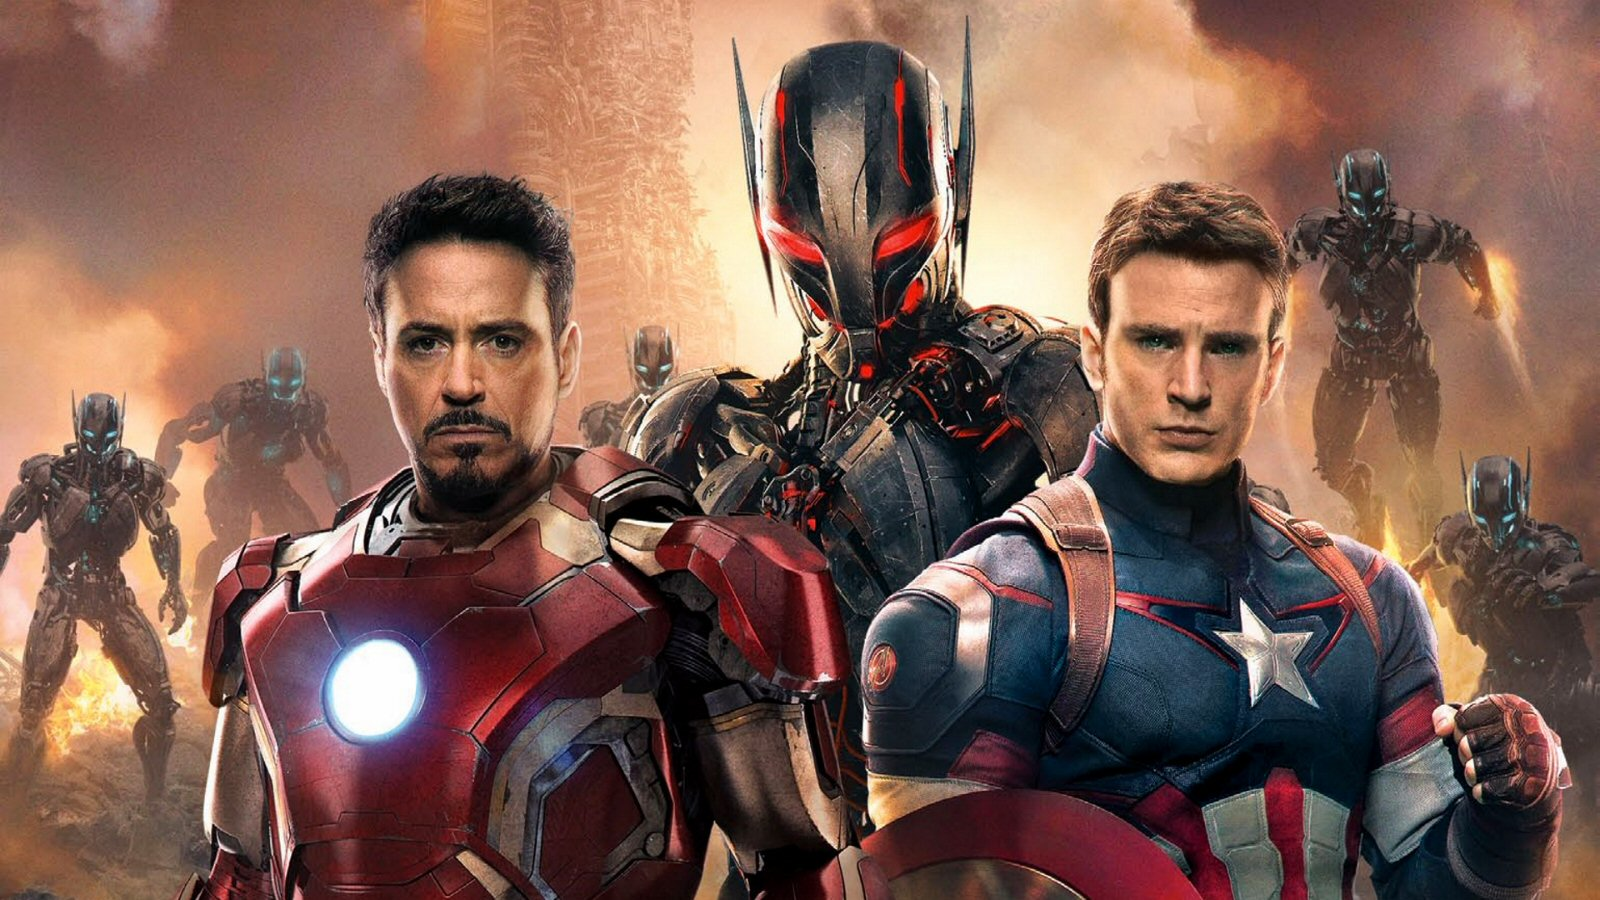 I'm not ready pick to a side yet, but I think I can rule out ULTRON.